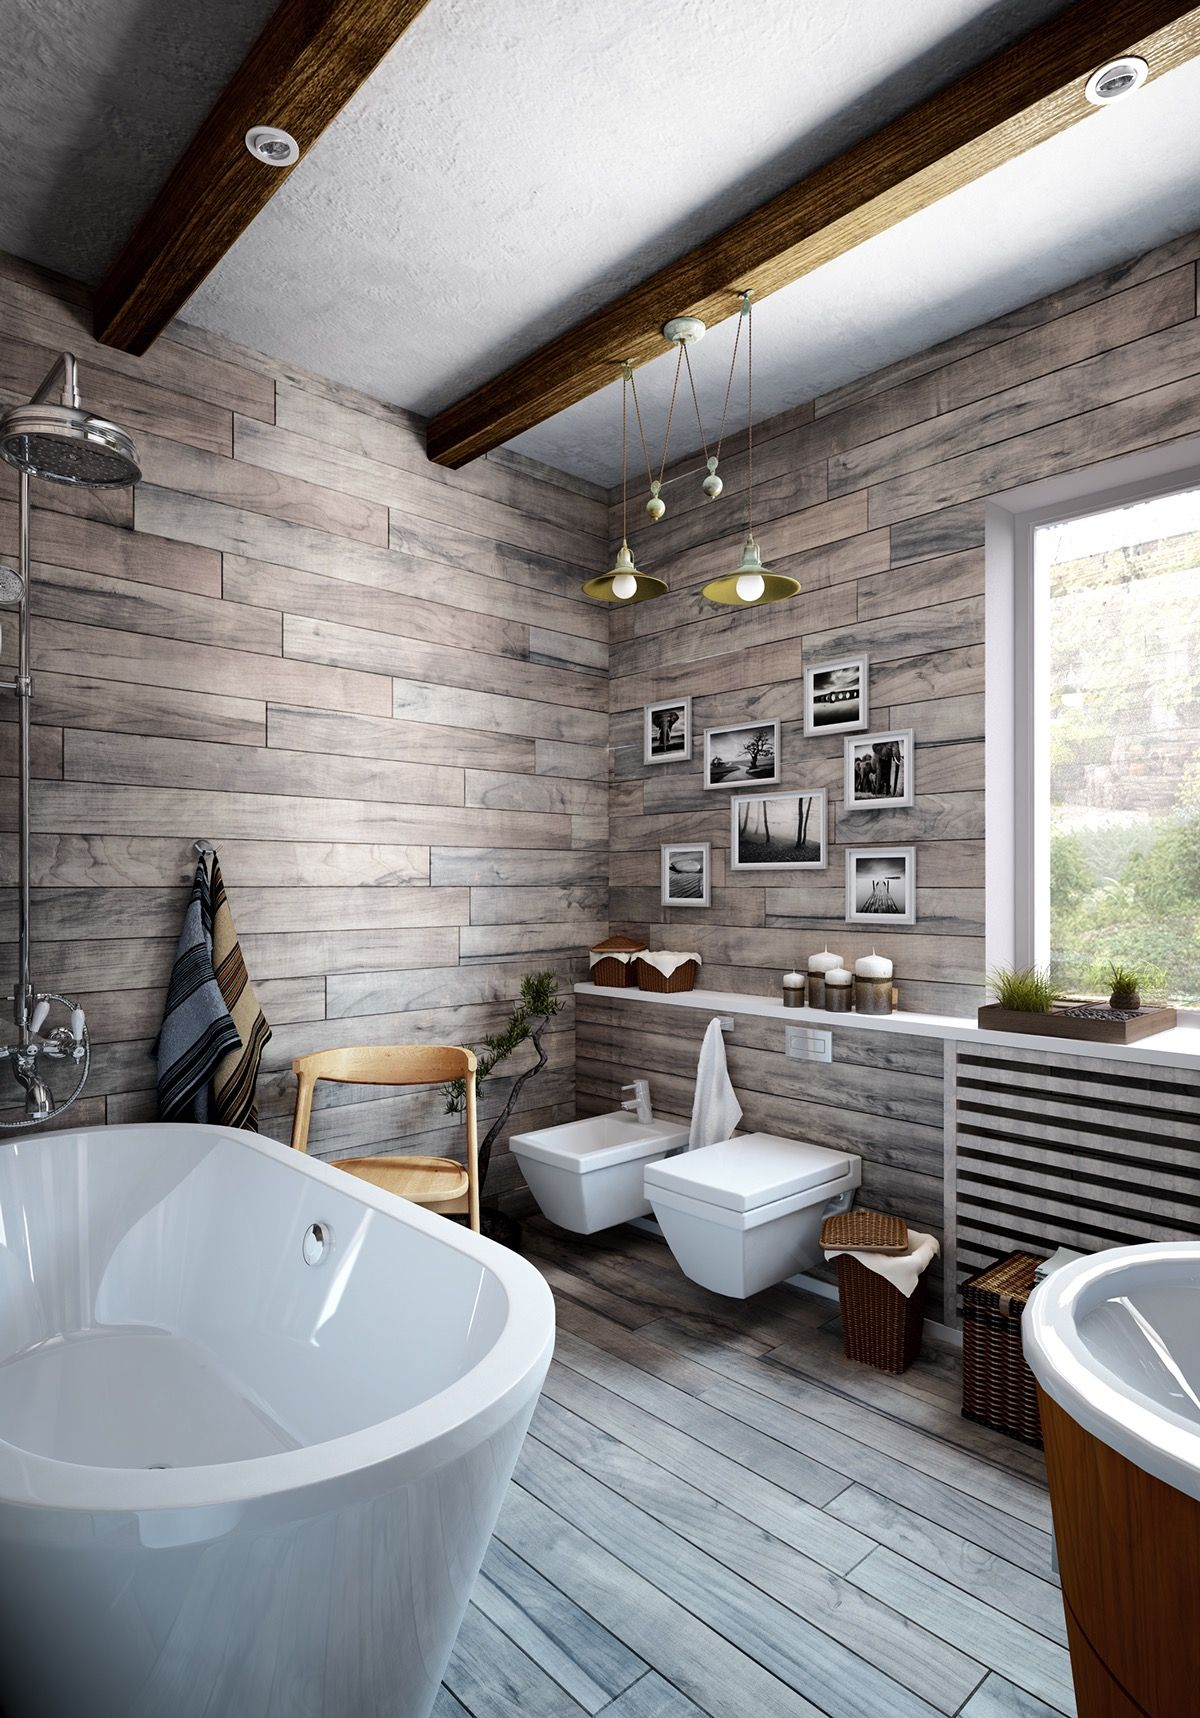 Modern Bathroom Design Ideas Using a Wooden Accent As The Main ...